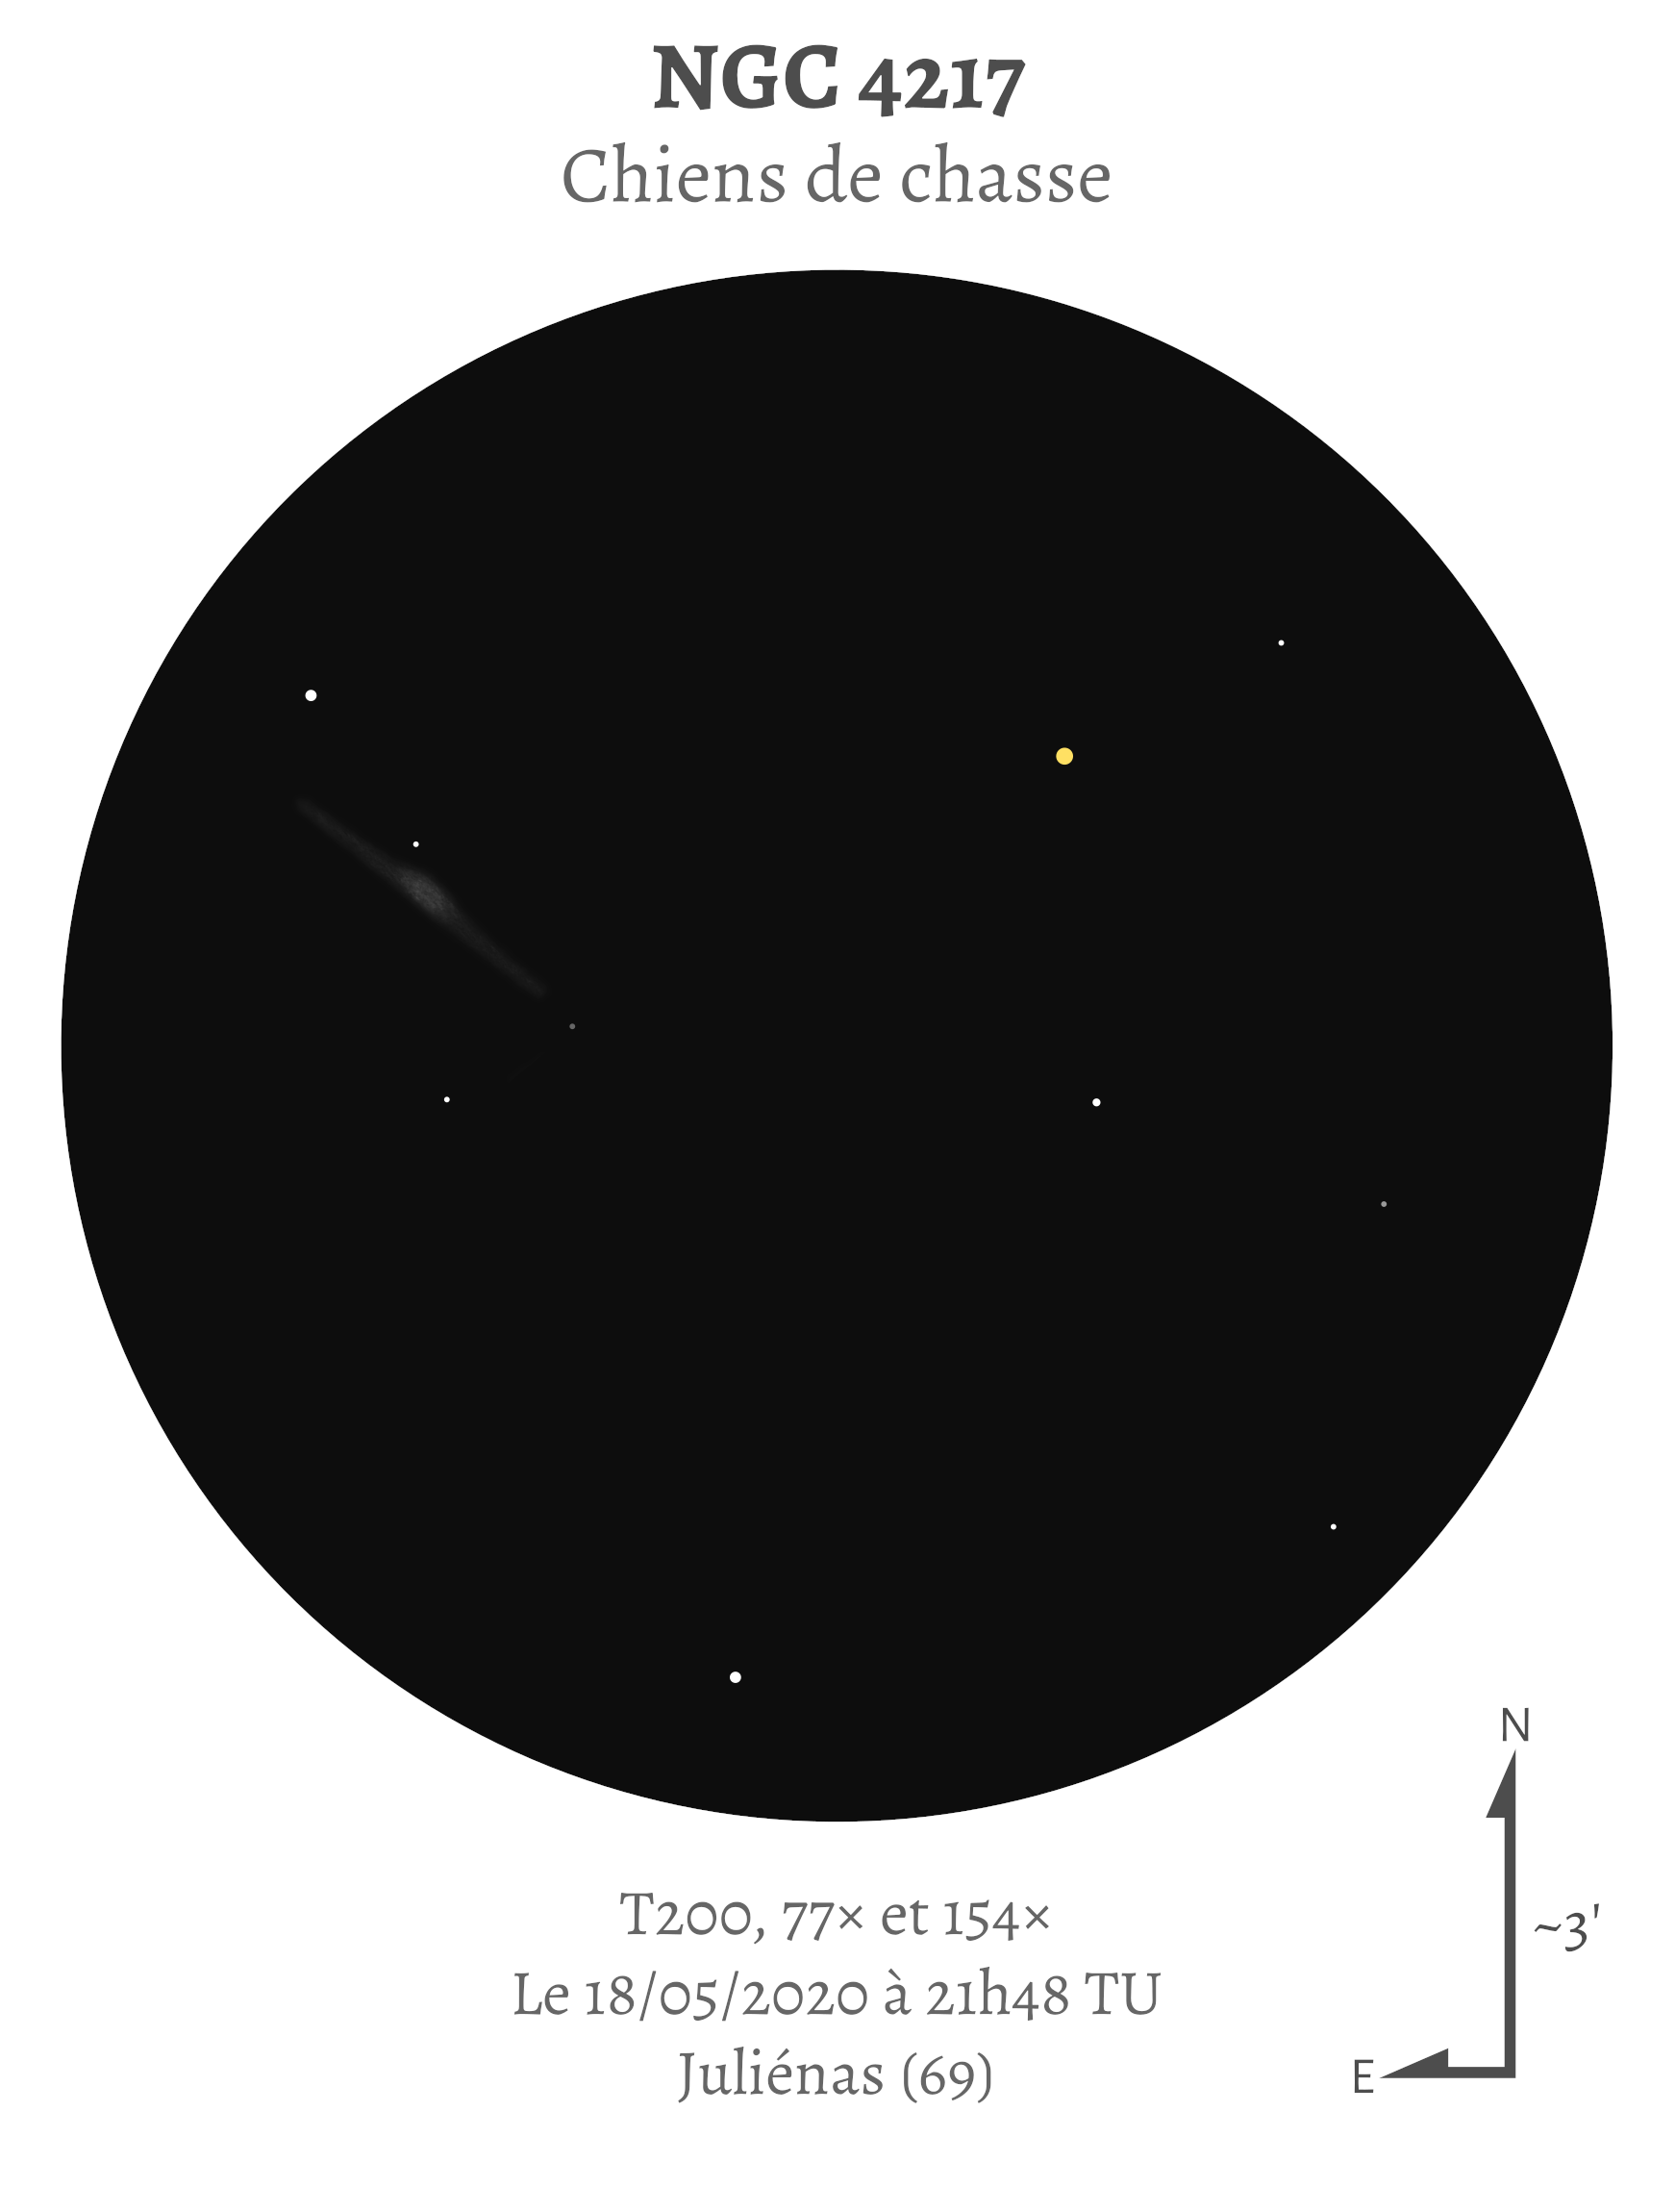 large.5ec8cfe6ae128_NGC4217-T200.png.9620d7afafedd5863955b440b19fce85.png